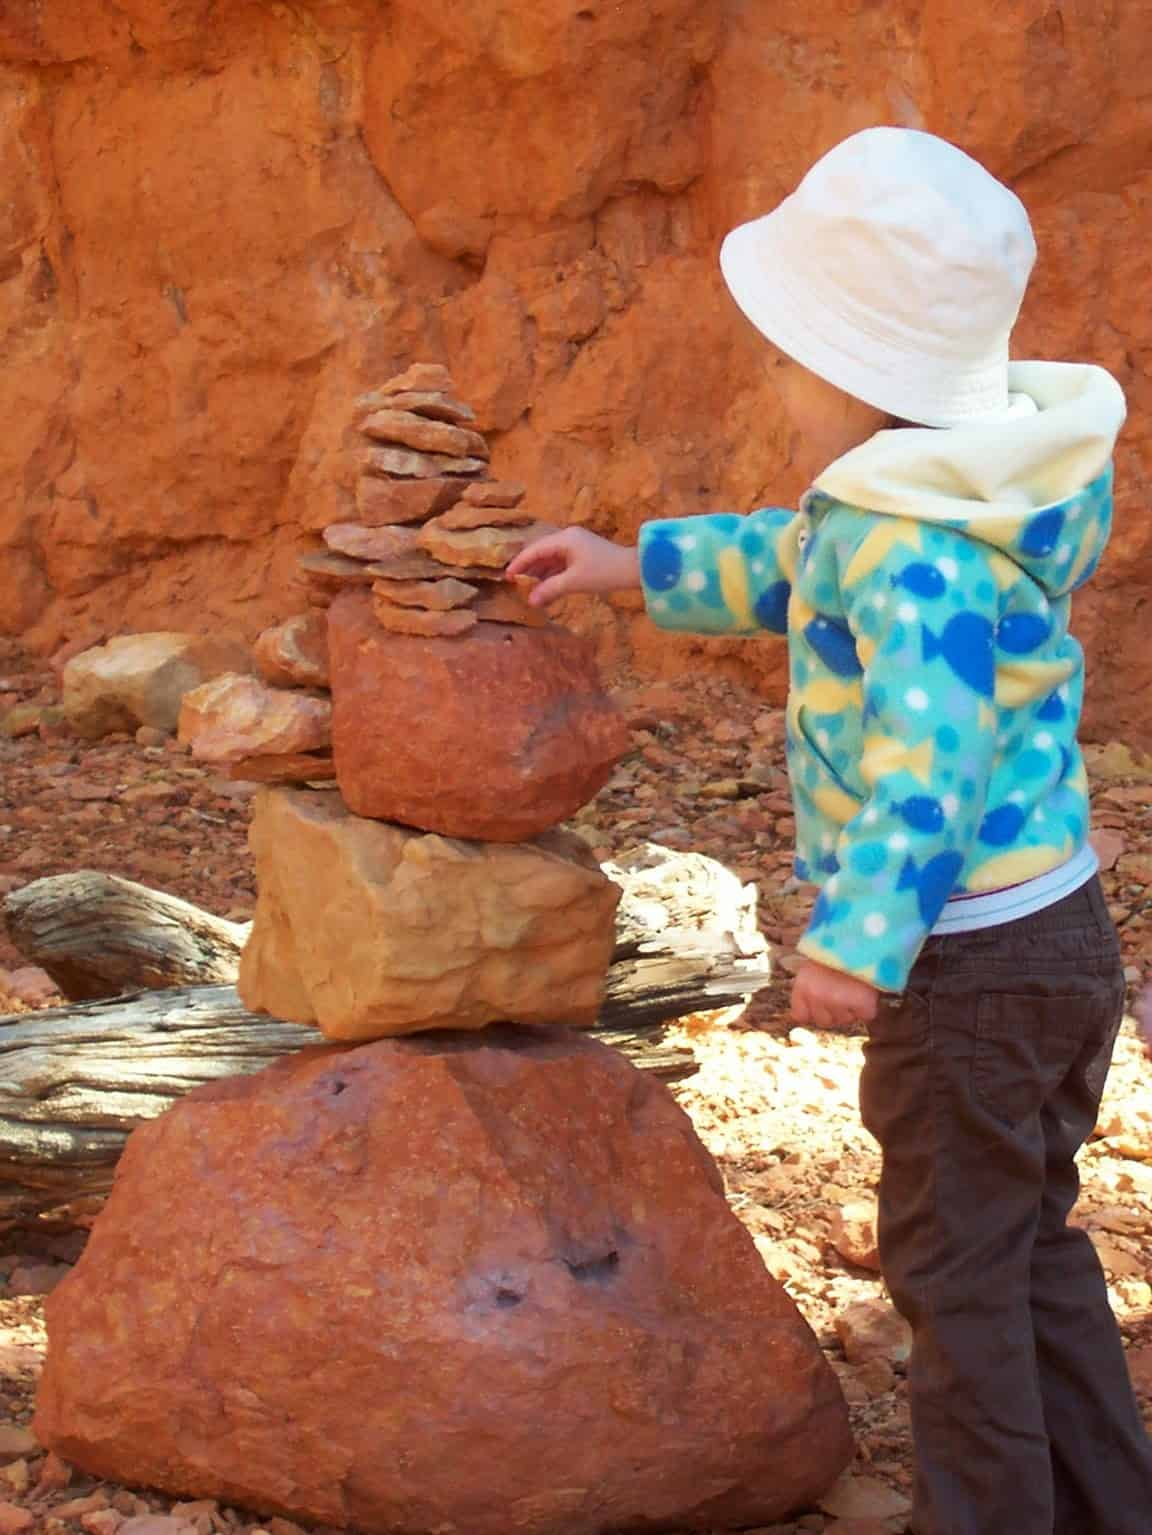 Rock cairns are fun trail markers when hiking with kids